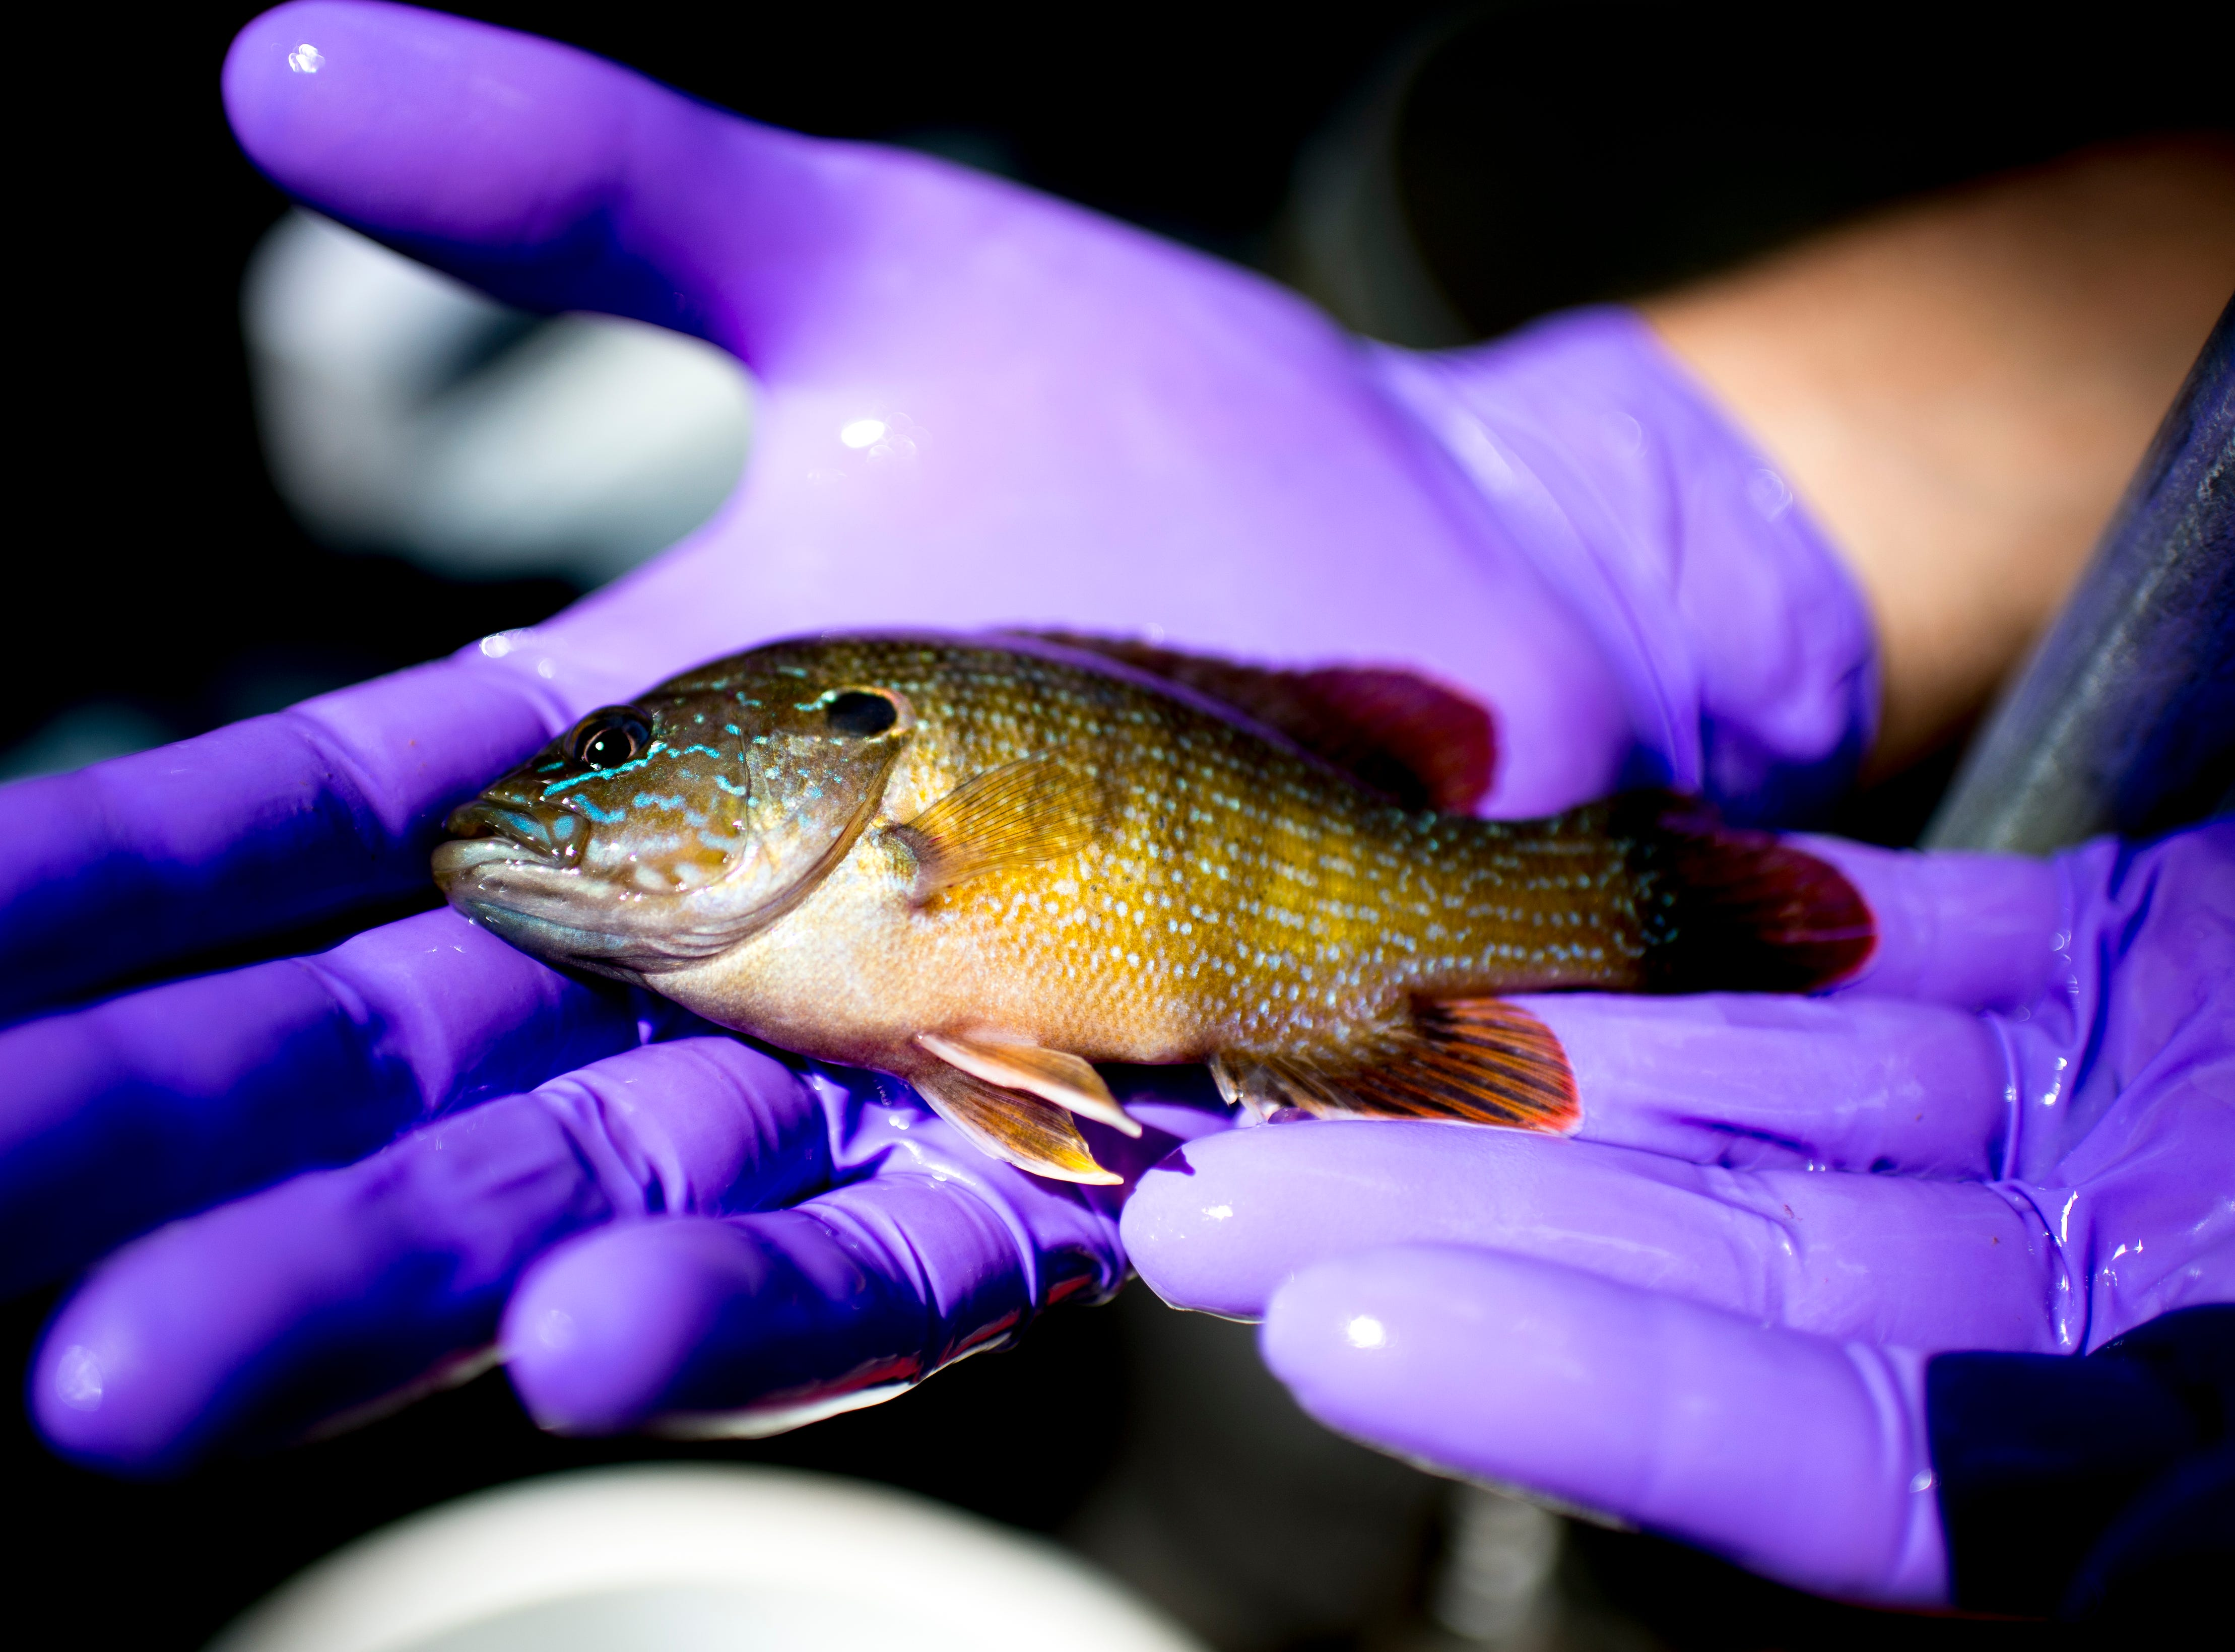 ORNL Aquatic Technology Technician Trent Jett holds a green sunfish caught in the stream during a field research trip by ORNL scientists at the East Fork Poplar Creek in Oak Ridge, Tennessee on Friday, September 7, 2018. Scientists compare streams that have been impacted by human development to streams in less developed areas to understand its impact on the health of streams and wildlife.